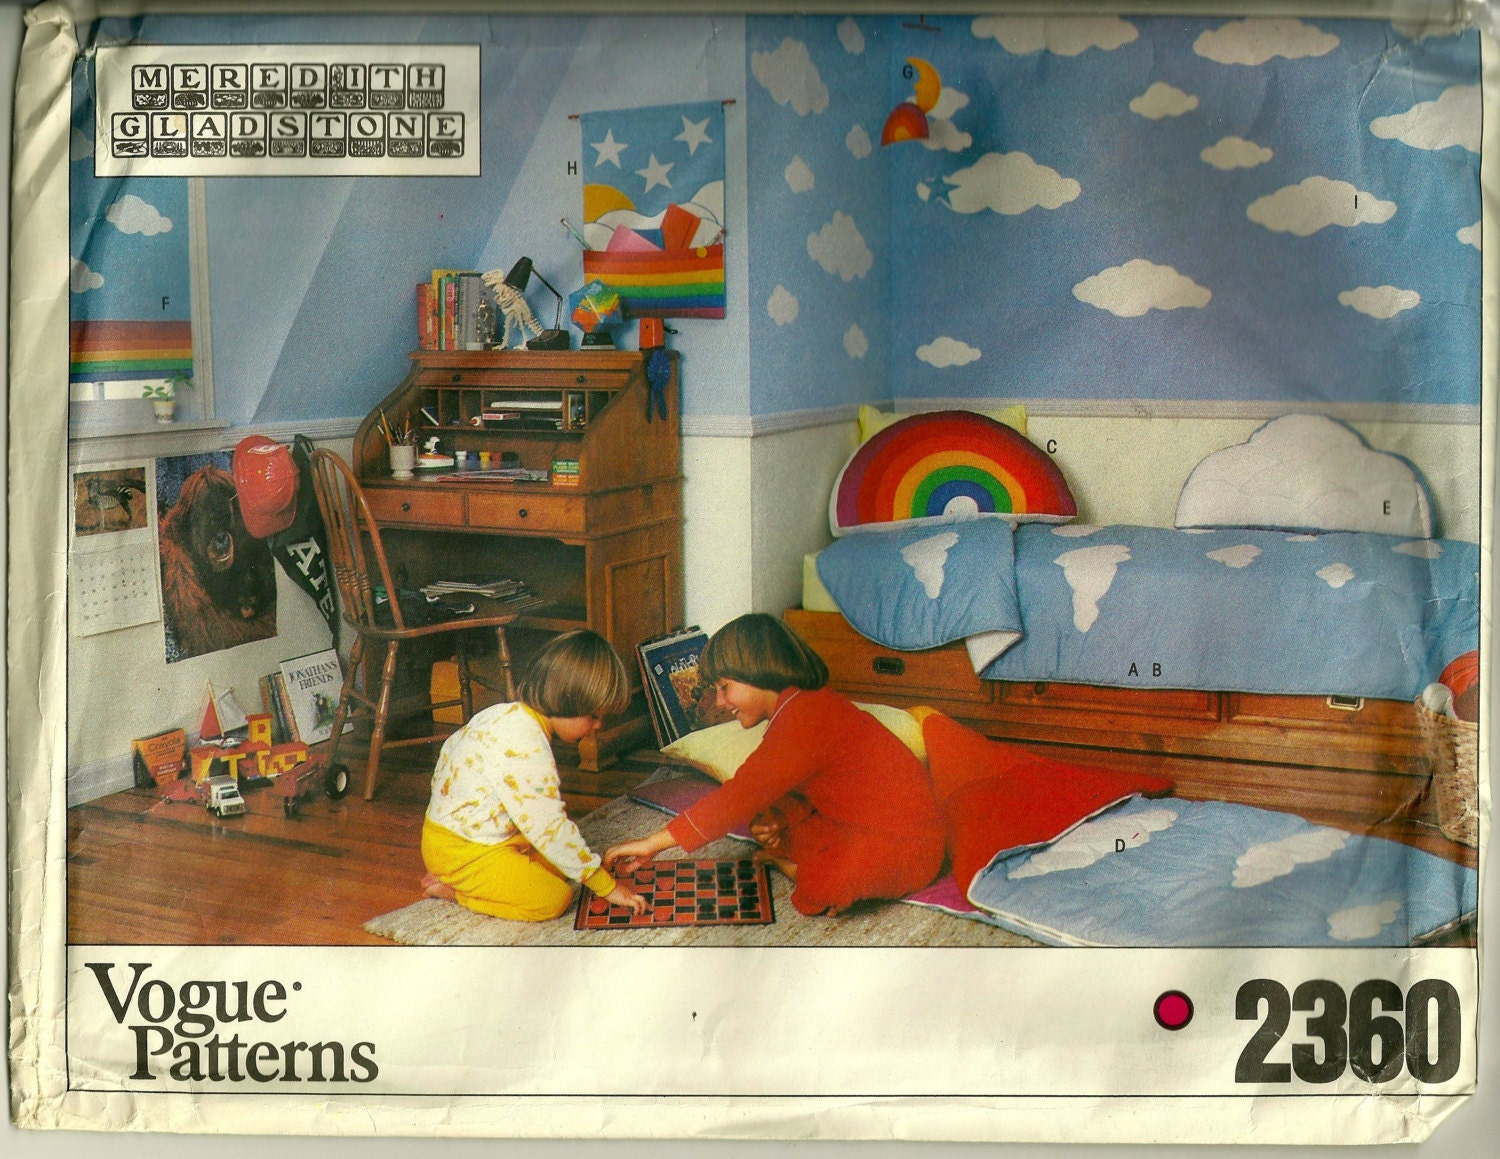 Early 1980s Meredith Gladstone children's decor pattern Vogue 2360